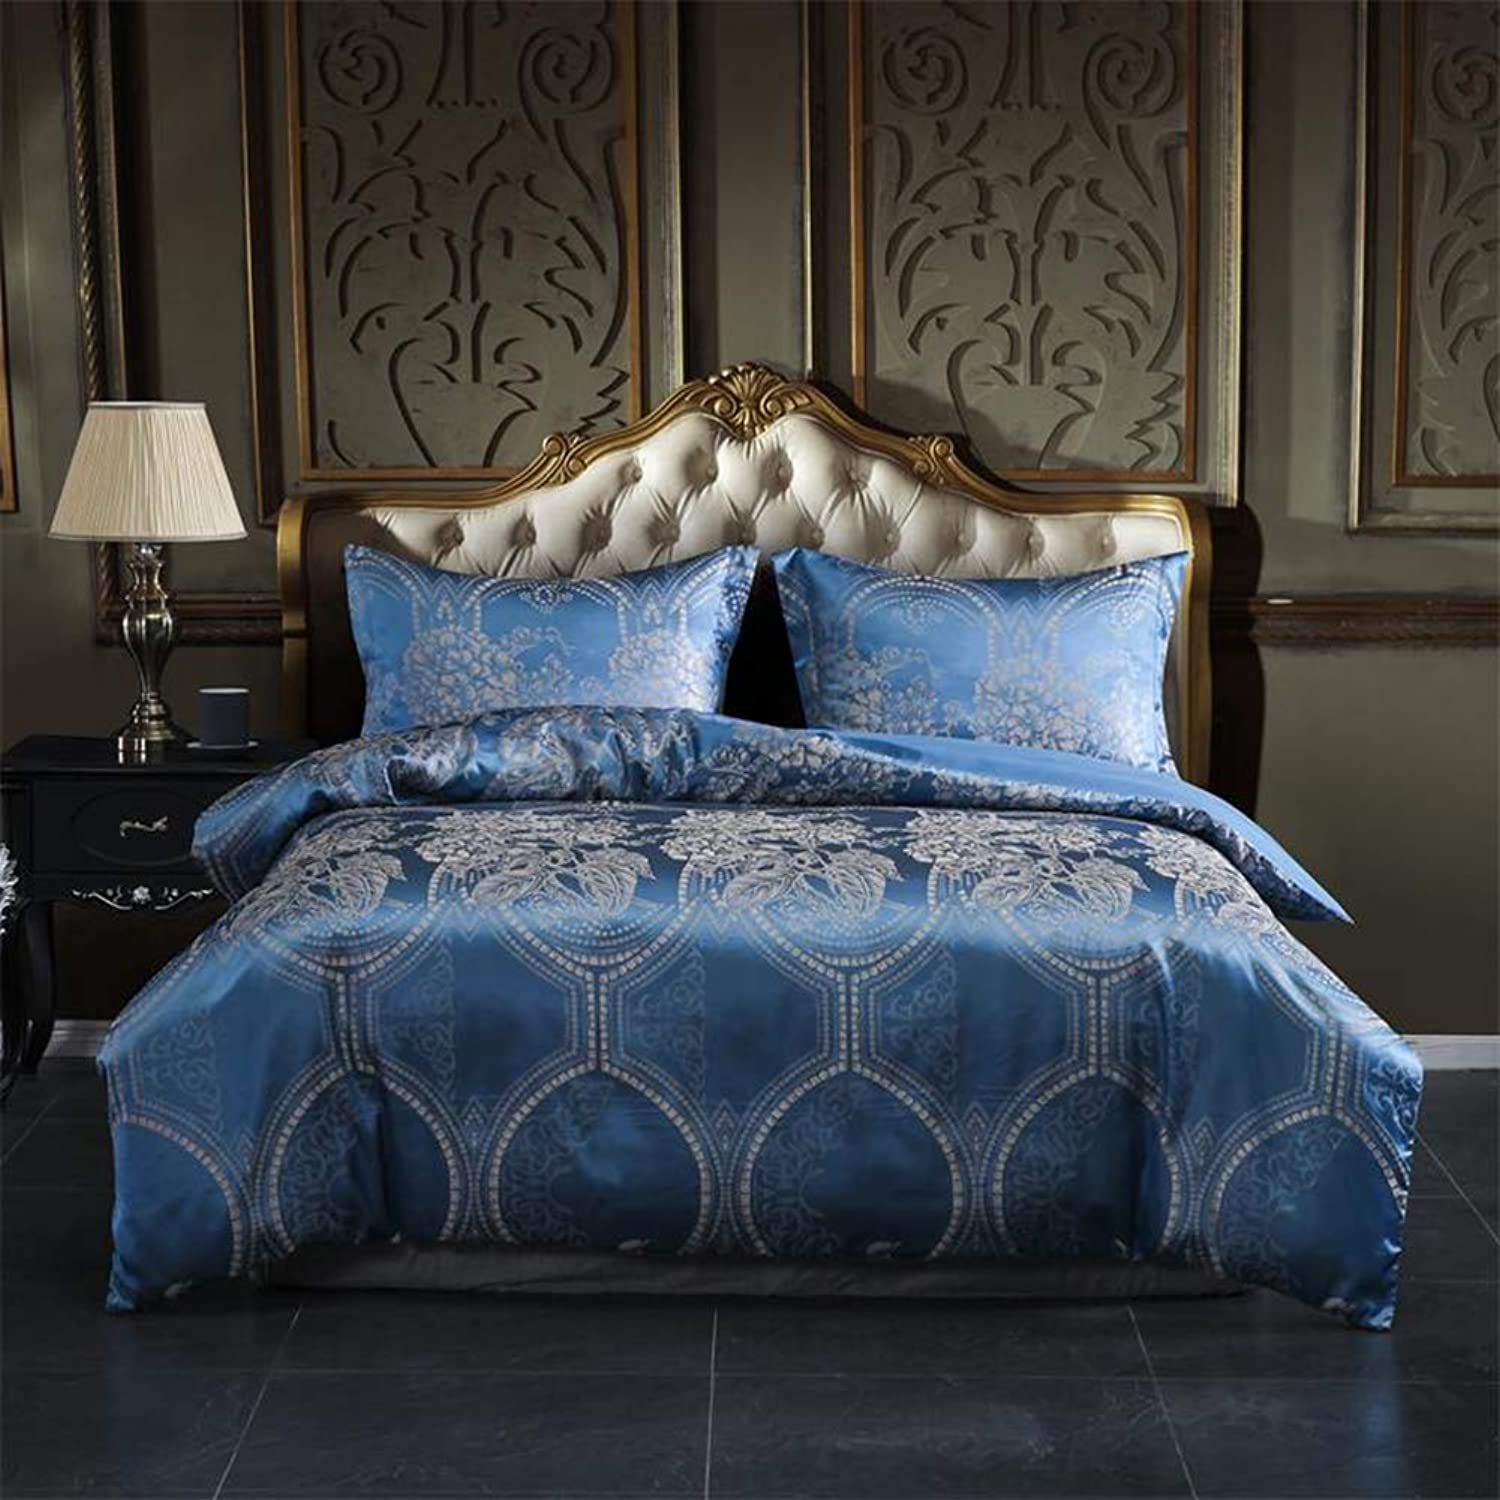 DuShow Silk Duvet Cover Set Queen bluee Jacquard 3 Pieces Soft (1 Duvet Cover + 2 Pillow Shams) Comforter Cover Set with Zipper Closure